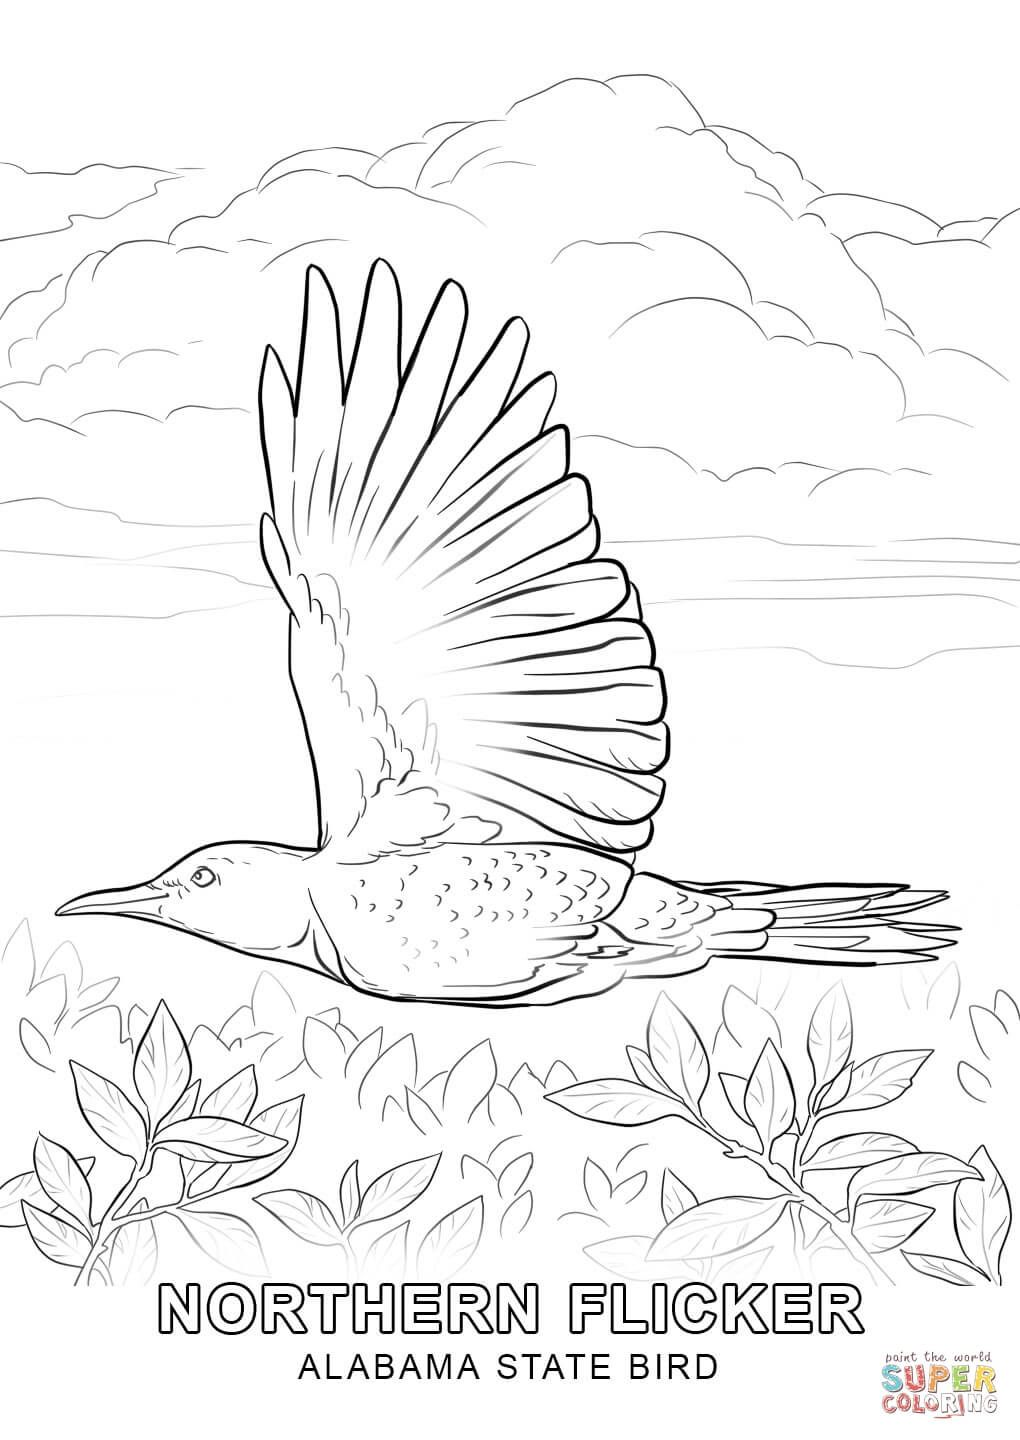 click the alabama state bird coloring pages to view